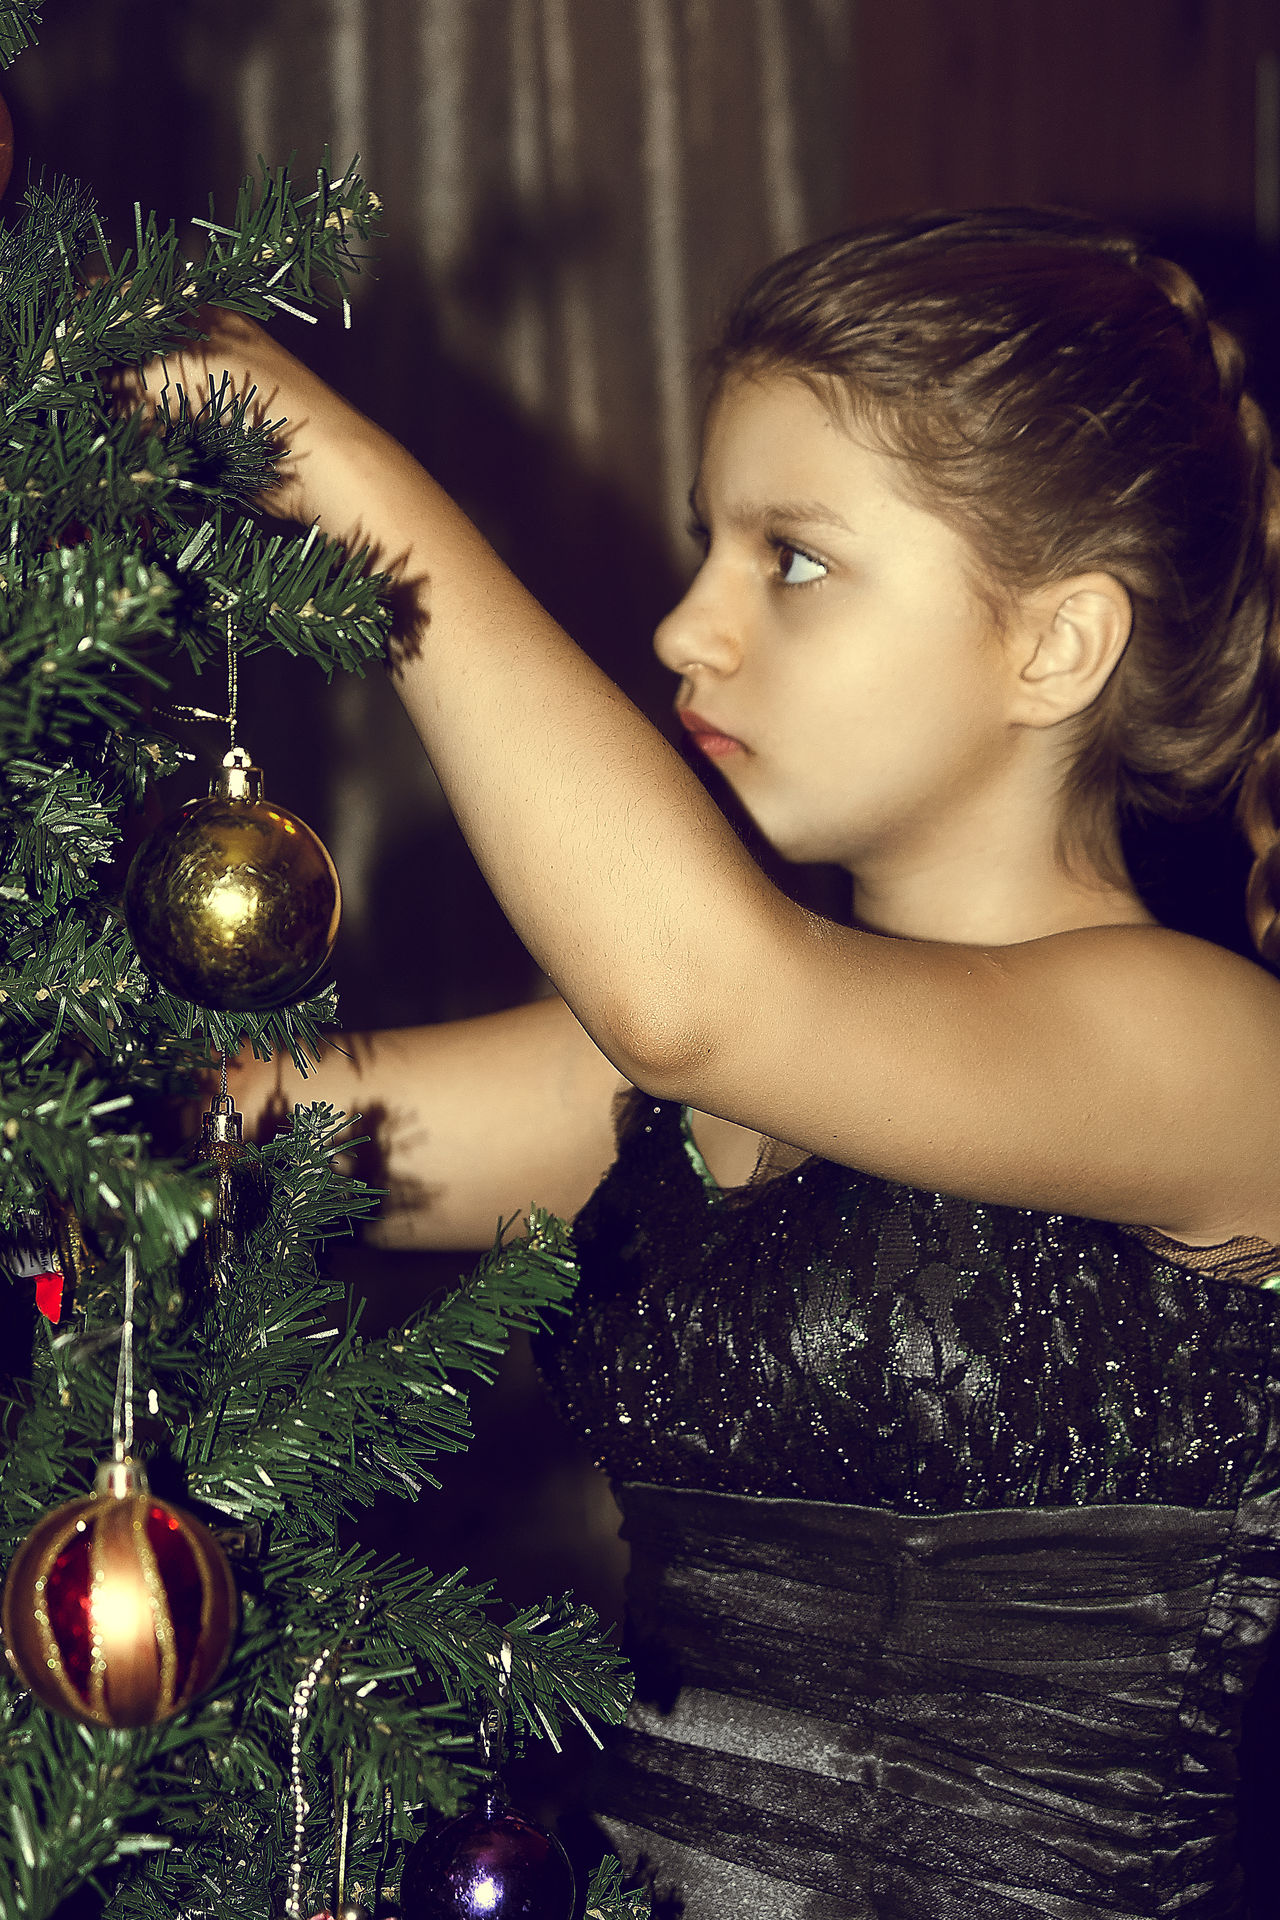 December - time of miracles Russia Home Lifestyles Portraits Childhood Long Hair Adult Focus On Foreground Child Real People Enjoying Life EyeEm Best Shots Portrait Photography Portrait Young Adult Happiness Indoors